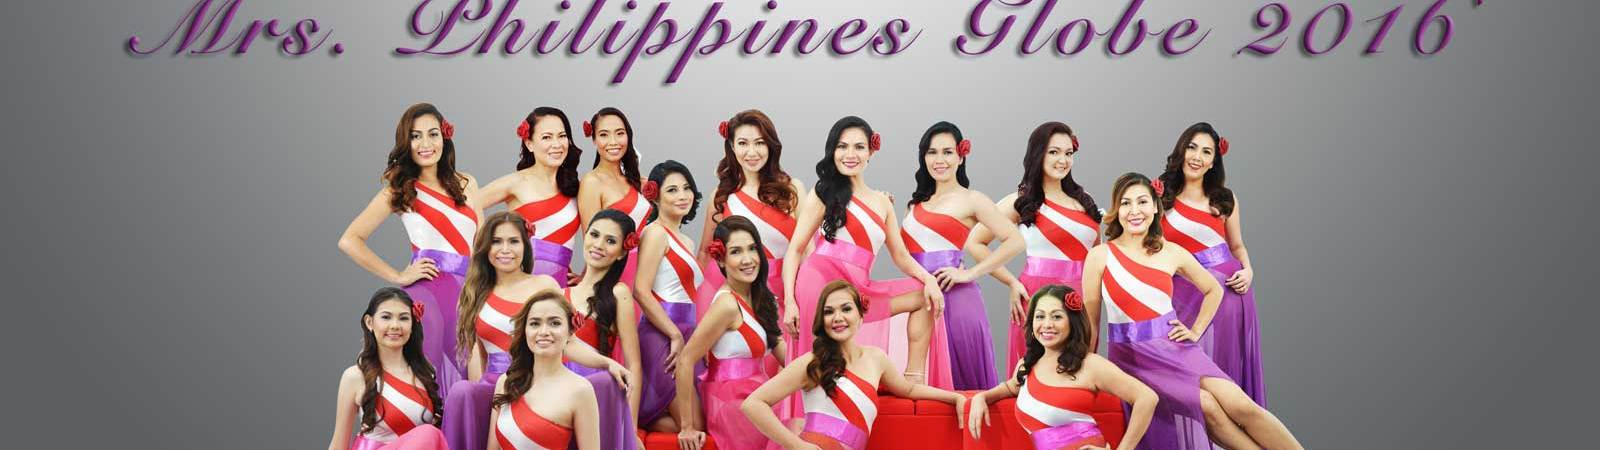 Mrs. Philippines Globe 2016 finalists